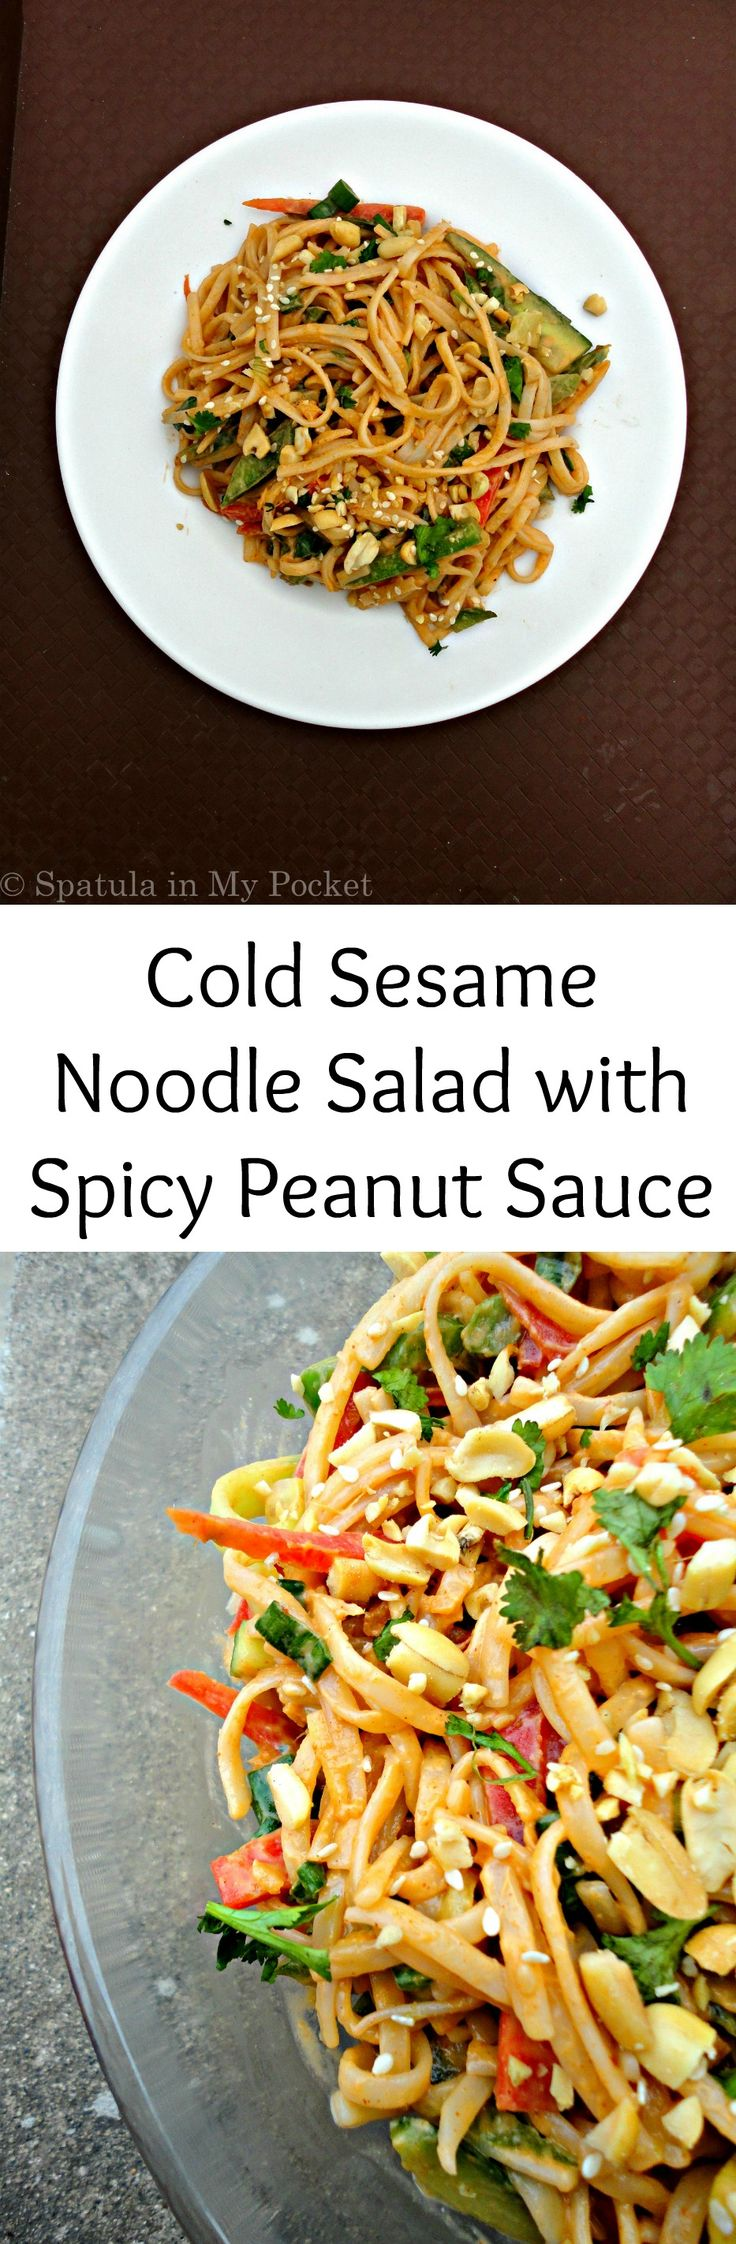 Best 25+ Sesame noodles ideas on Pinterest | Quick recipes with ...